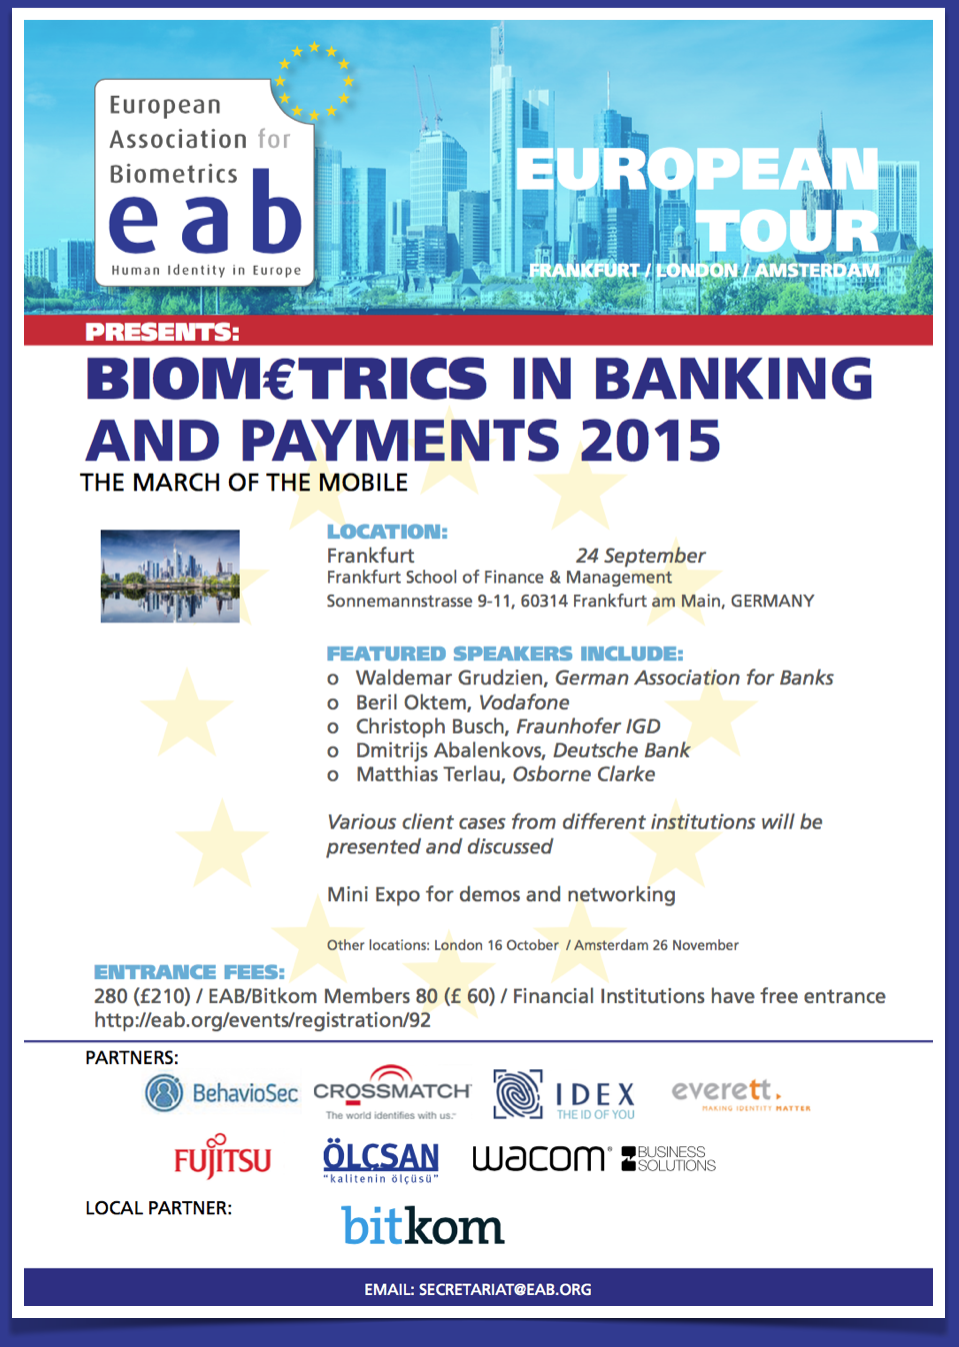 [illustration] EAB Biometrics in Banking and Payment 2015